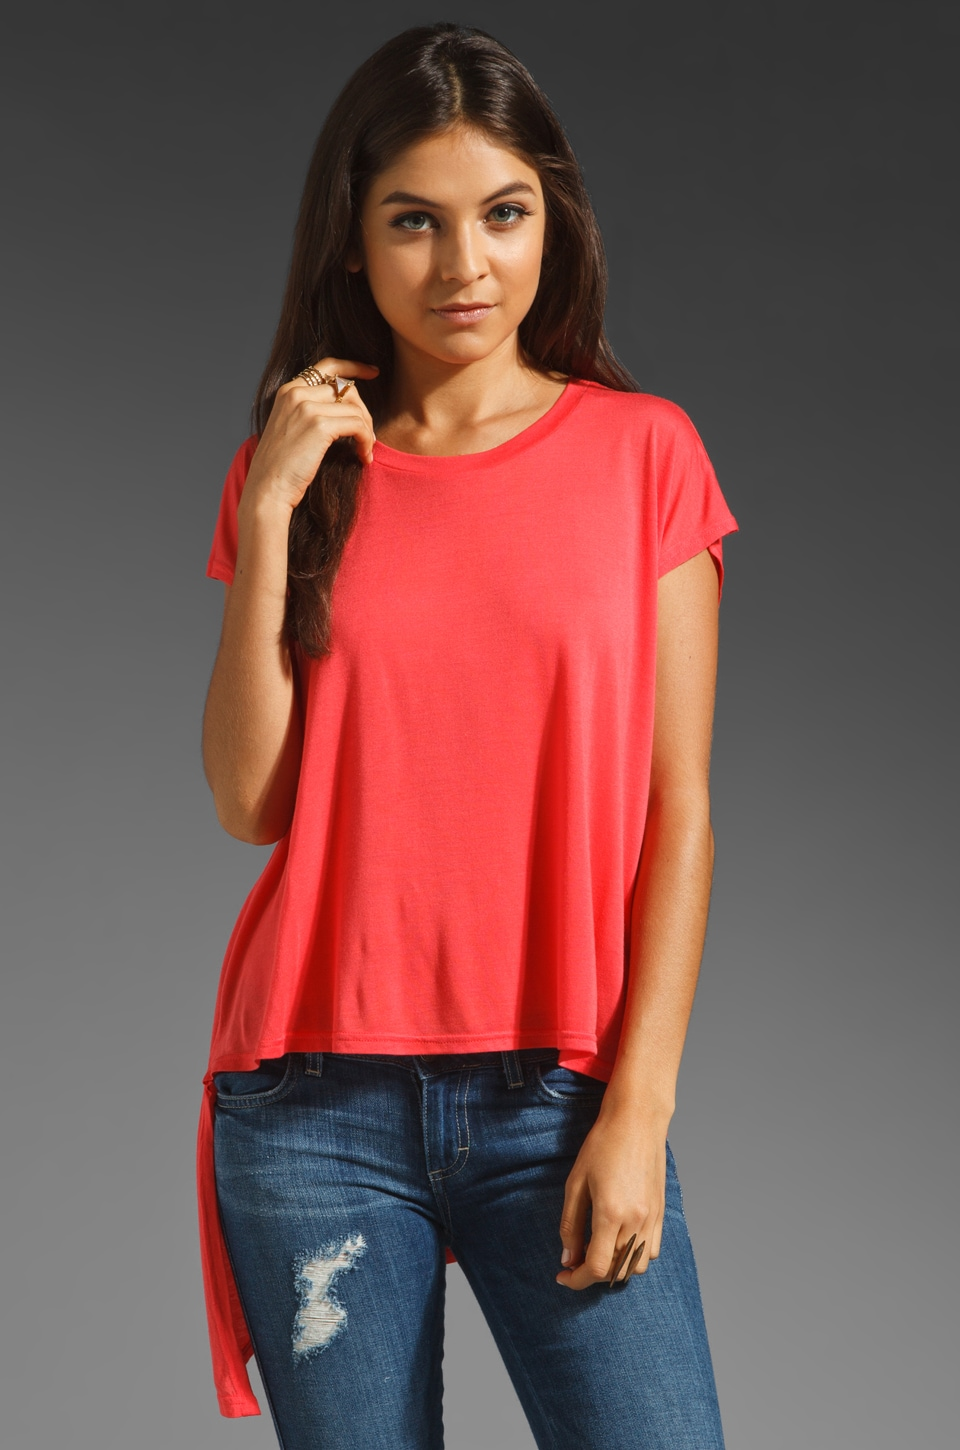 Sauce A Sem Tee in Red